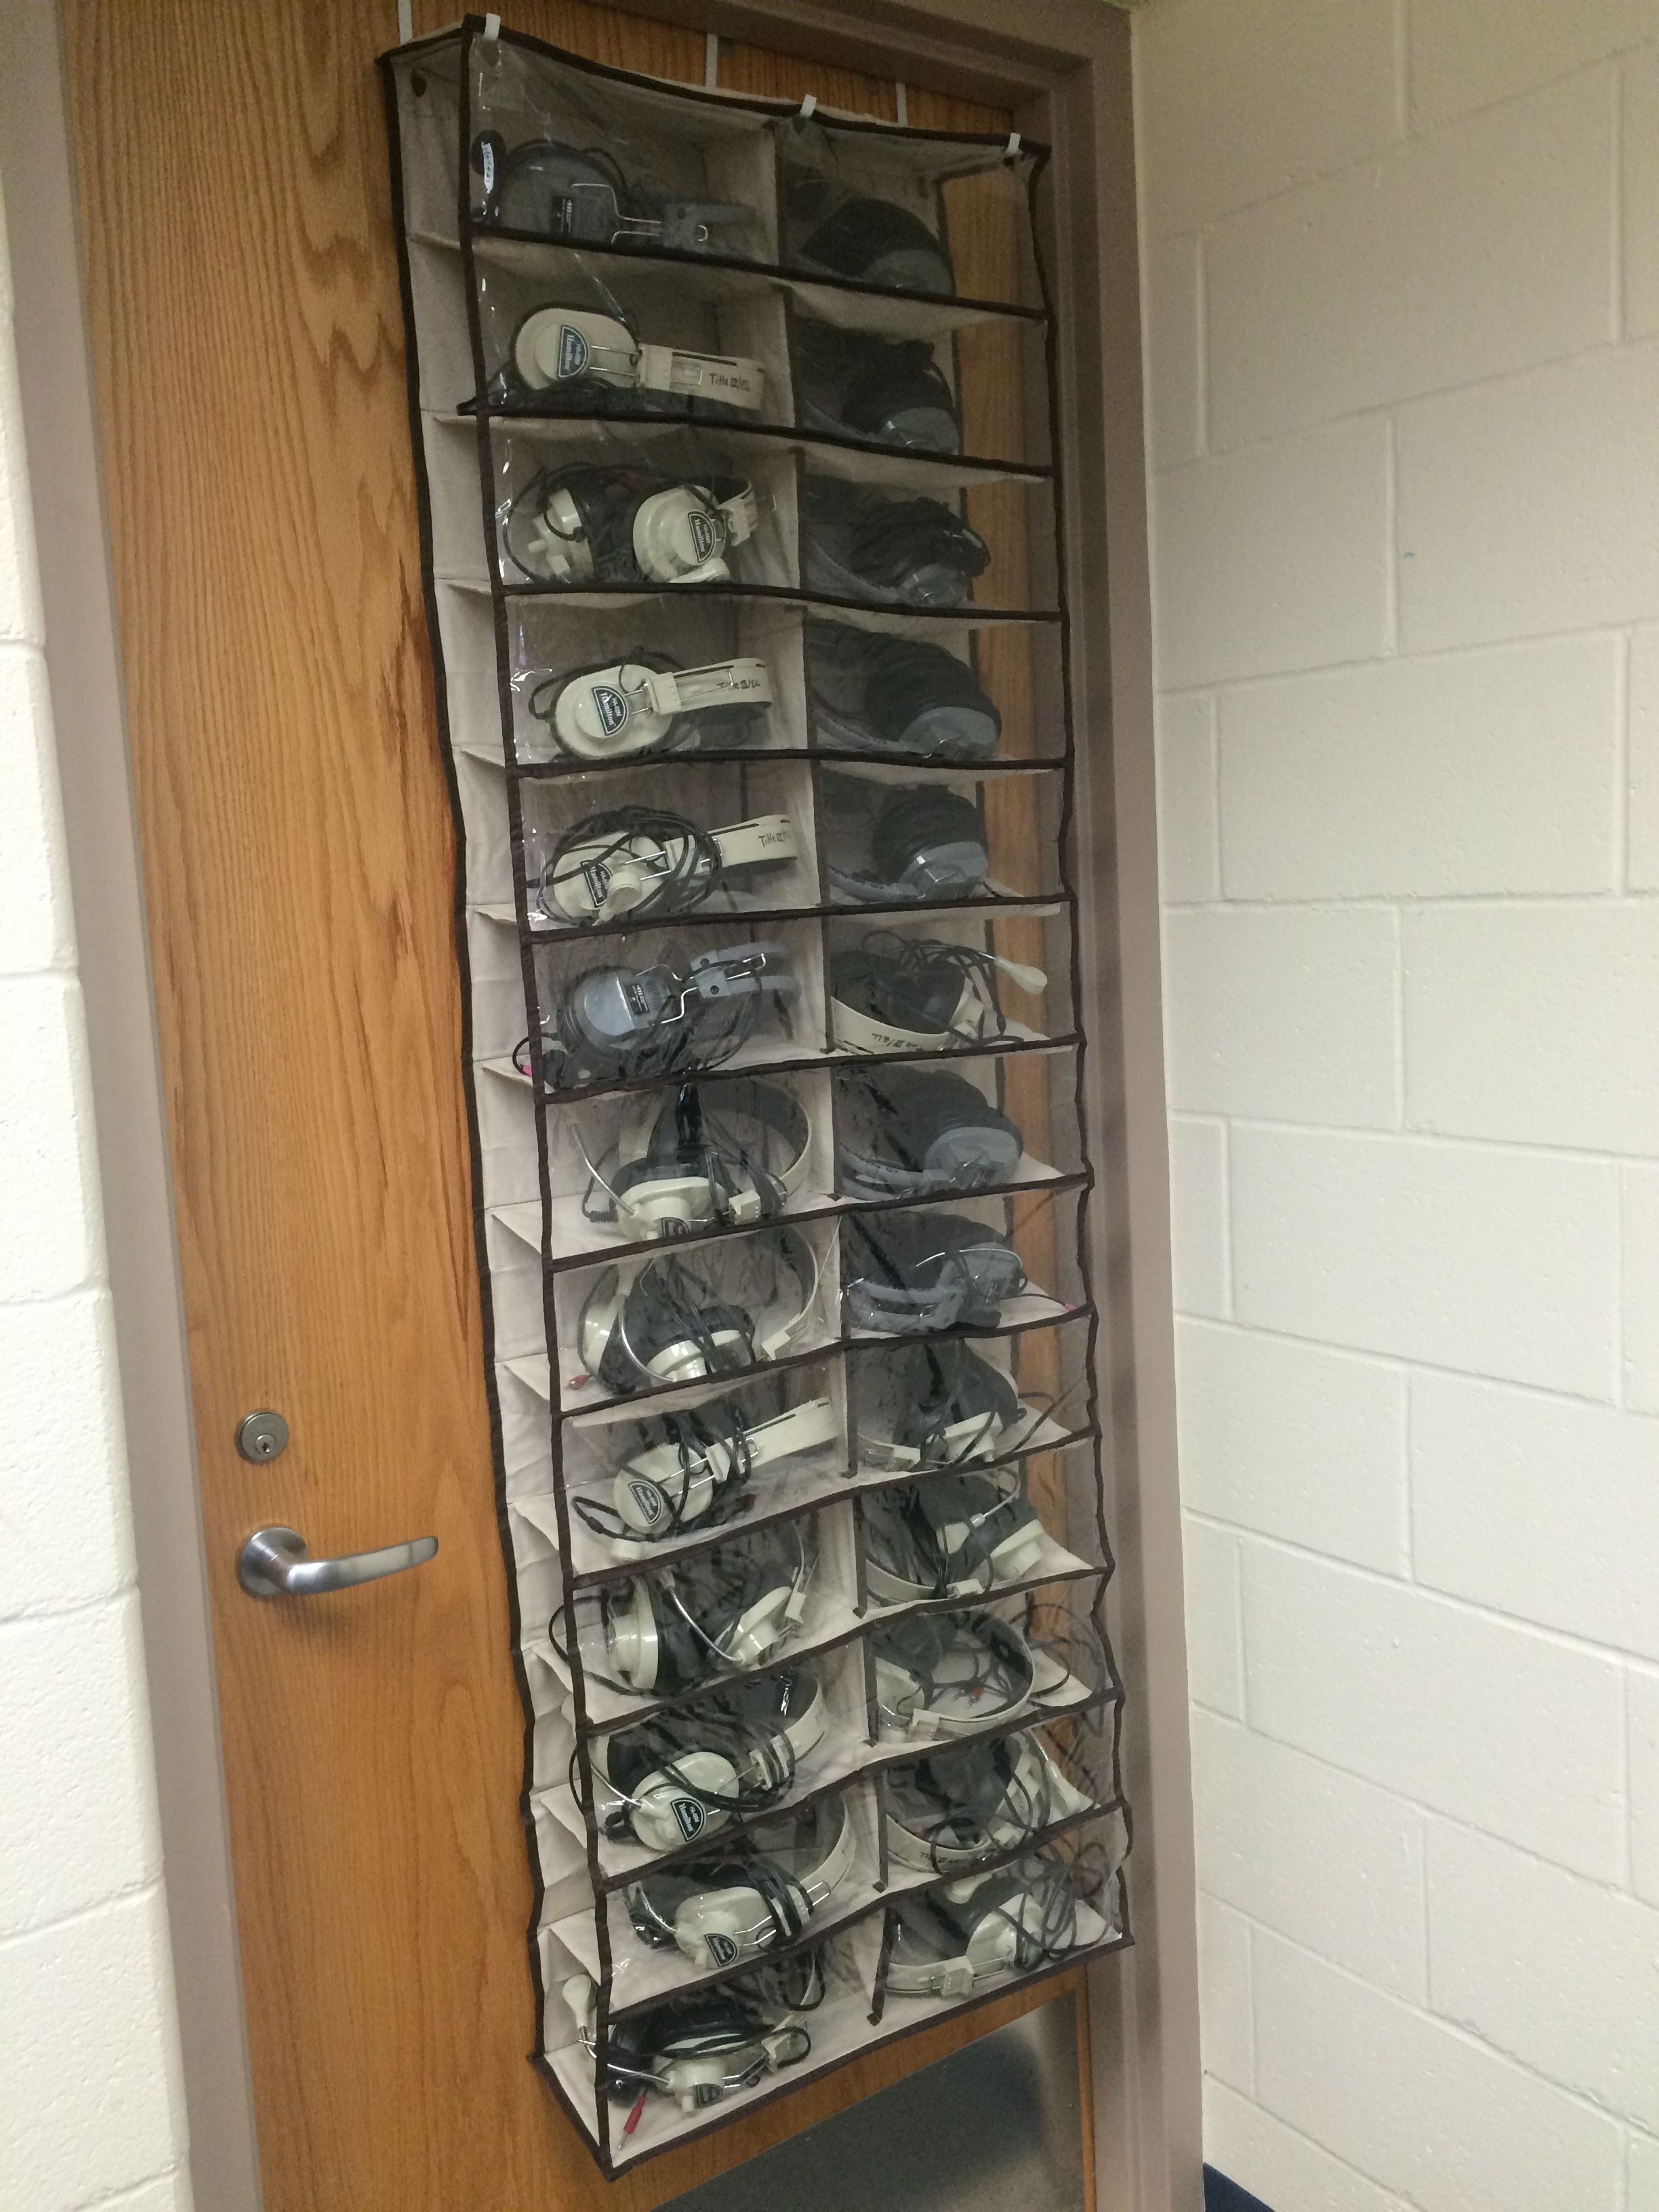 An Over The Door Shoe Organizer Works Great For Organizing